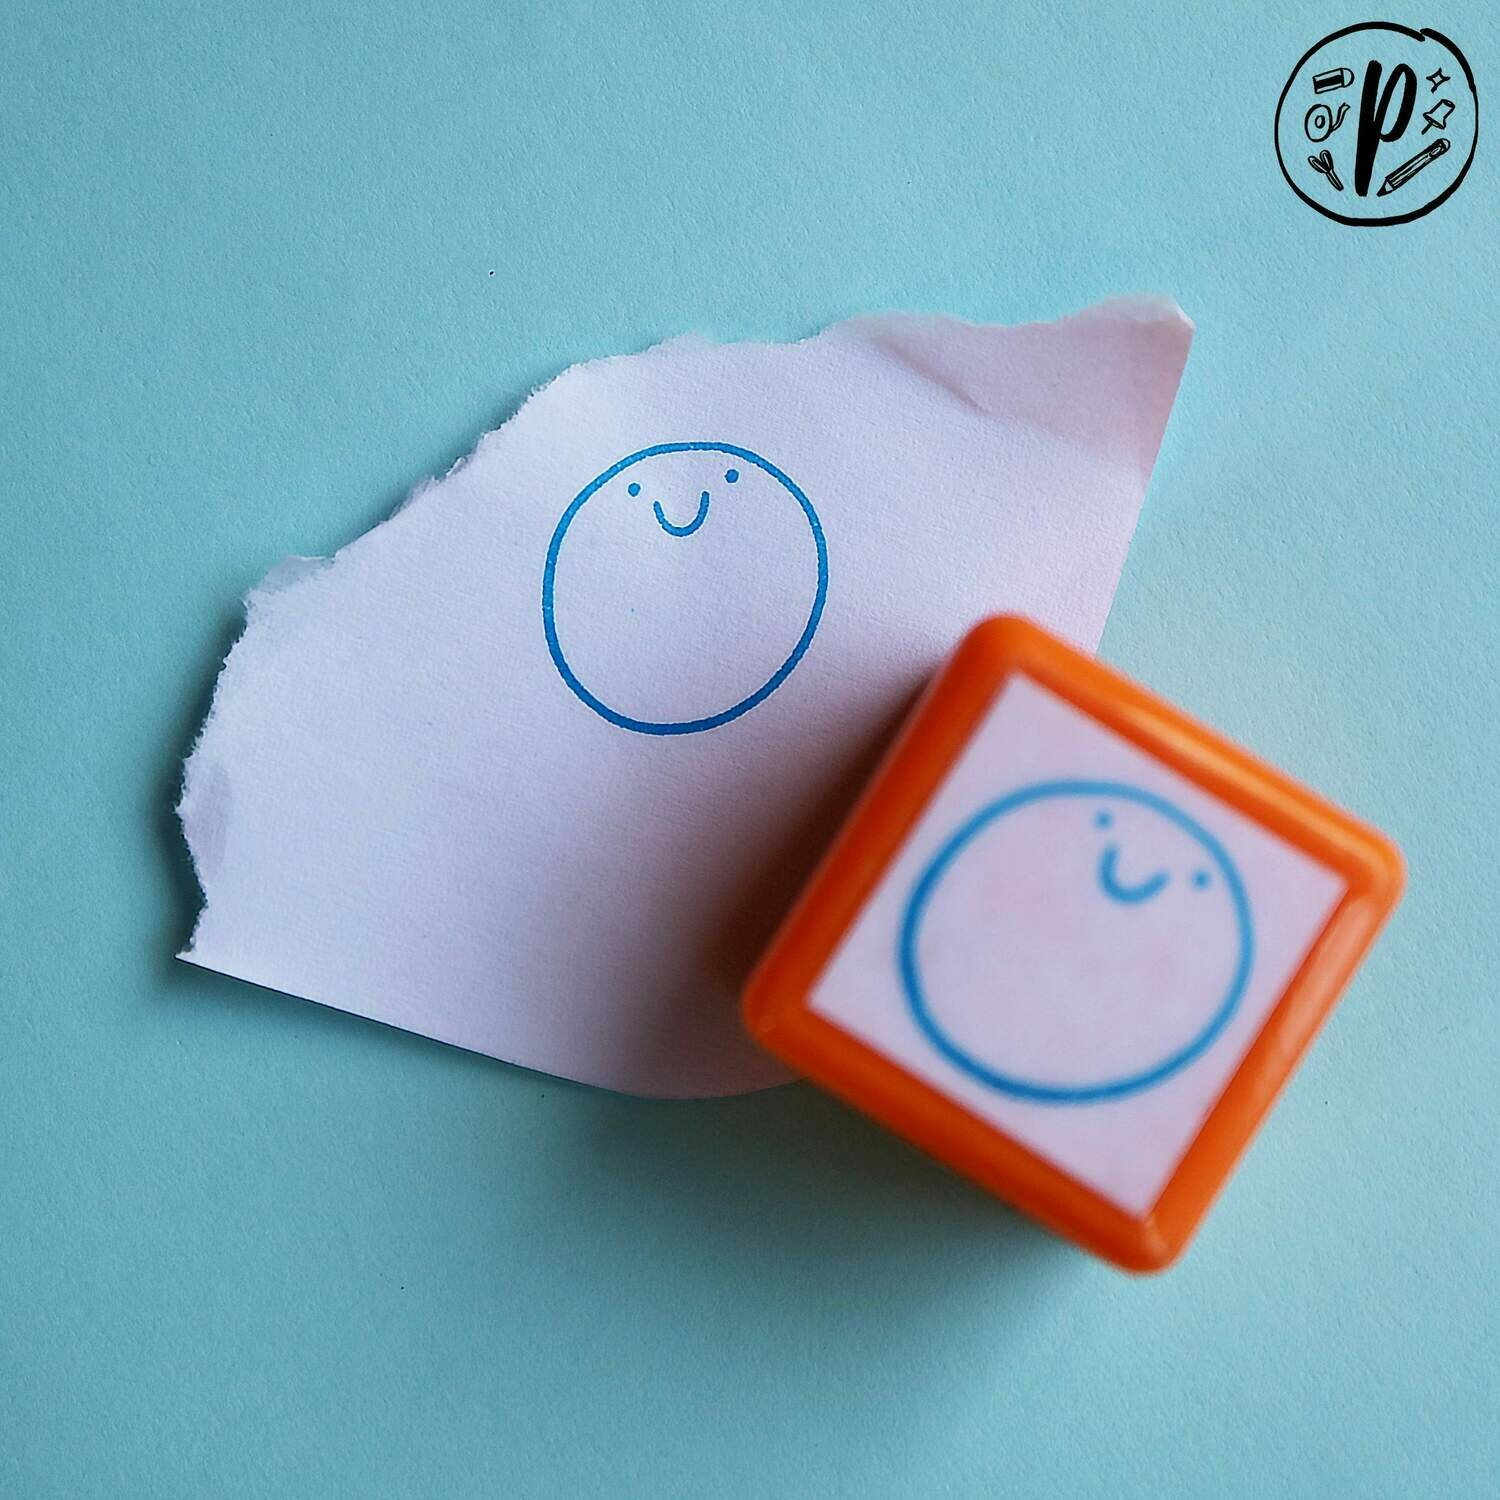 Planner Stamps // Digistamps x Paperworks Stationery: Smile